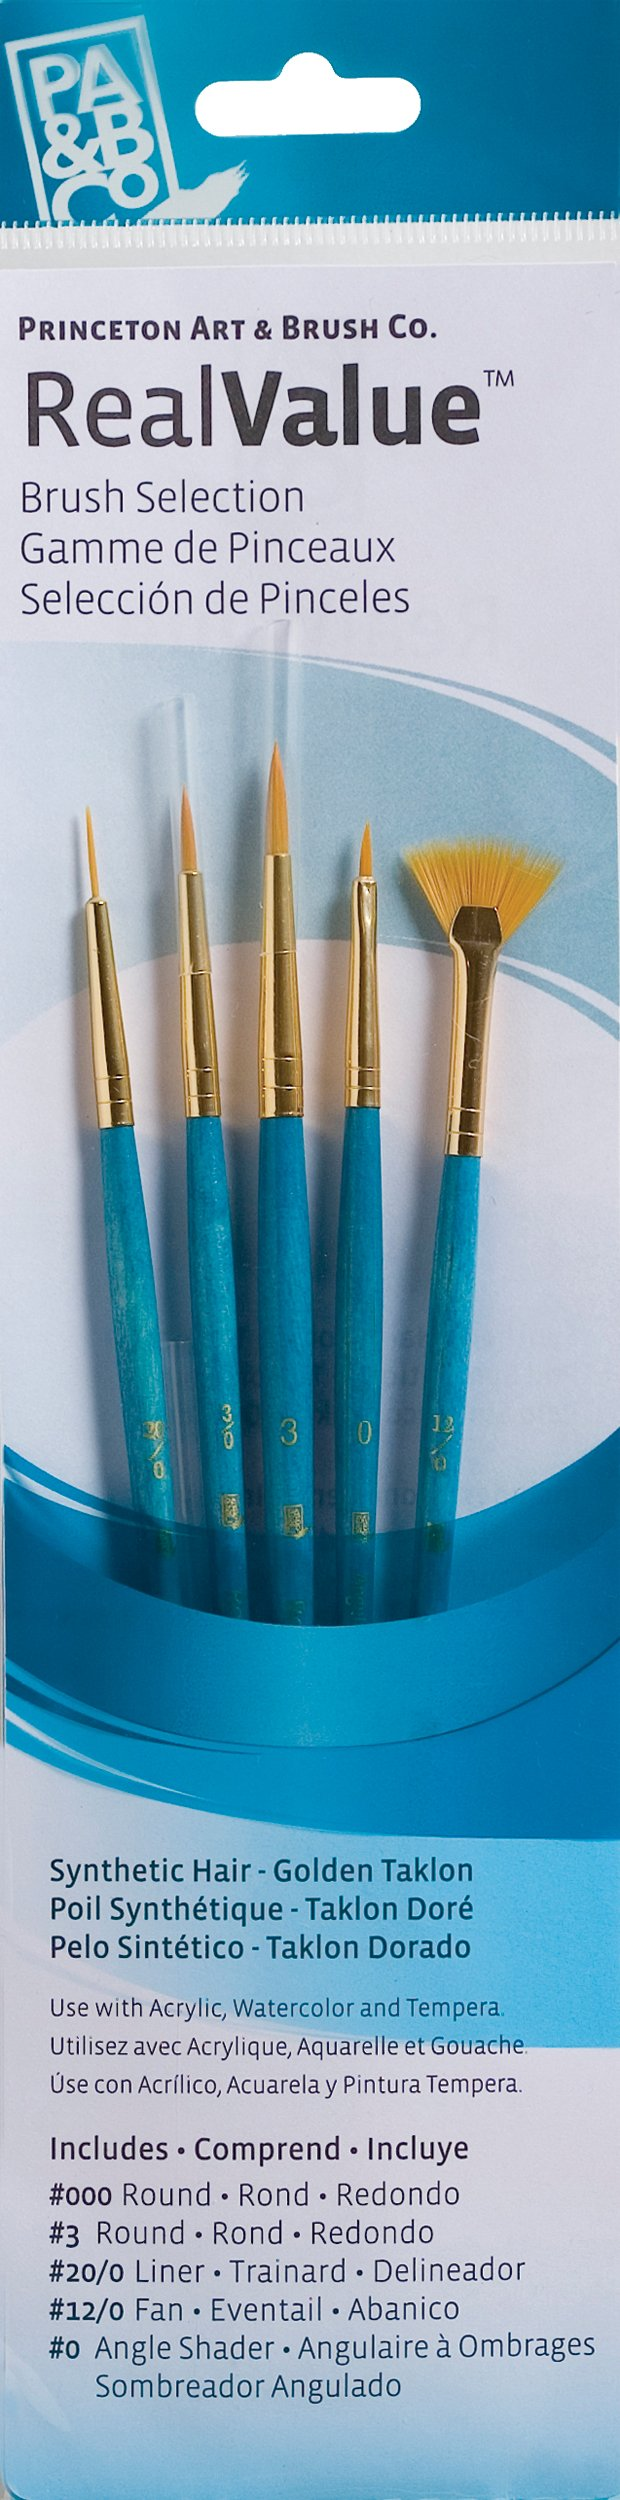 Princeton Art & Brush P9170 Real Value Brush Set, Synthetic Gold Taklon, Round 3/0, Liner 20/0, Fan 12/0, ANG 0